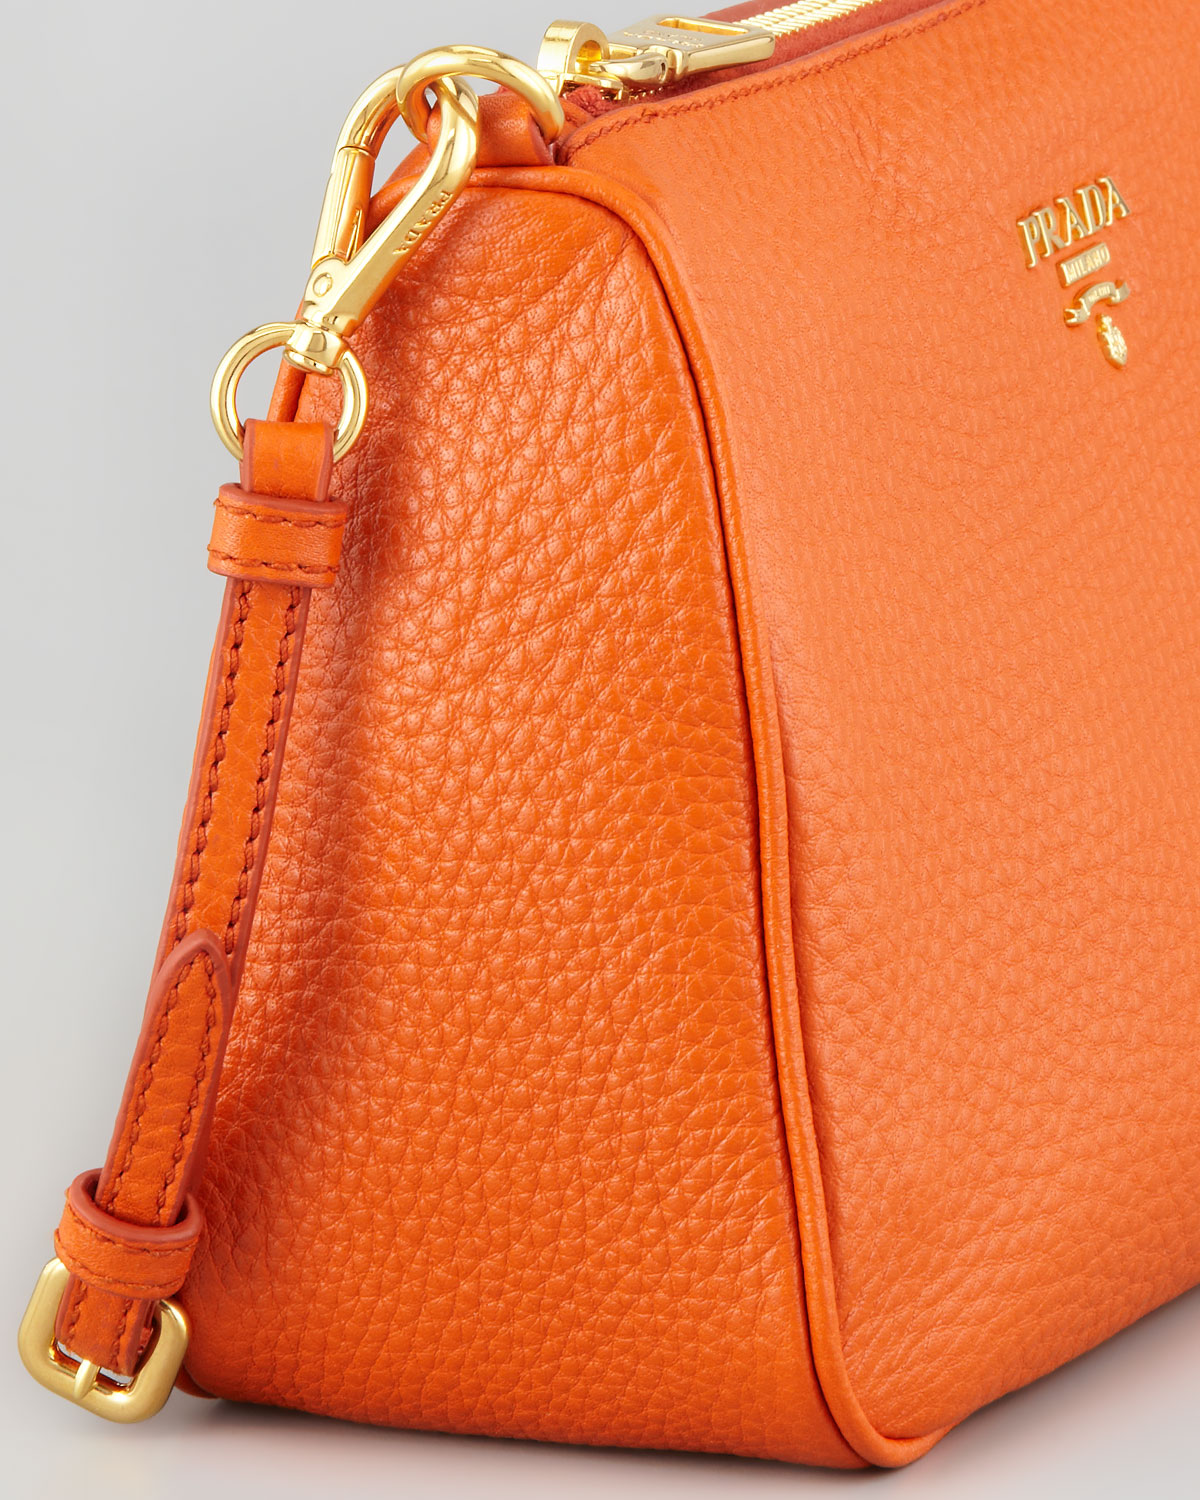 9387b84b7e ... leather x nylon ladys n8761 16d9b 345be  australia prada daino small  shoulder bag in orange lyst 3c17a 52920